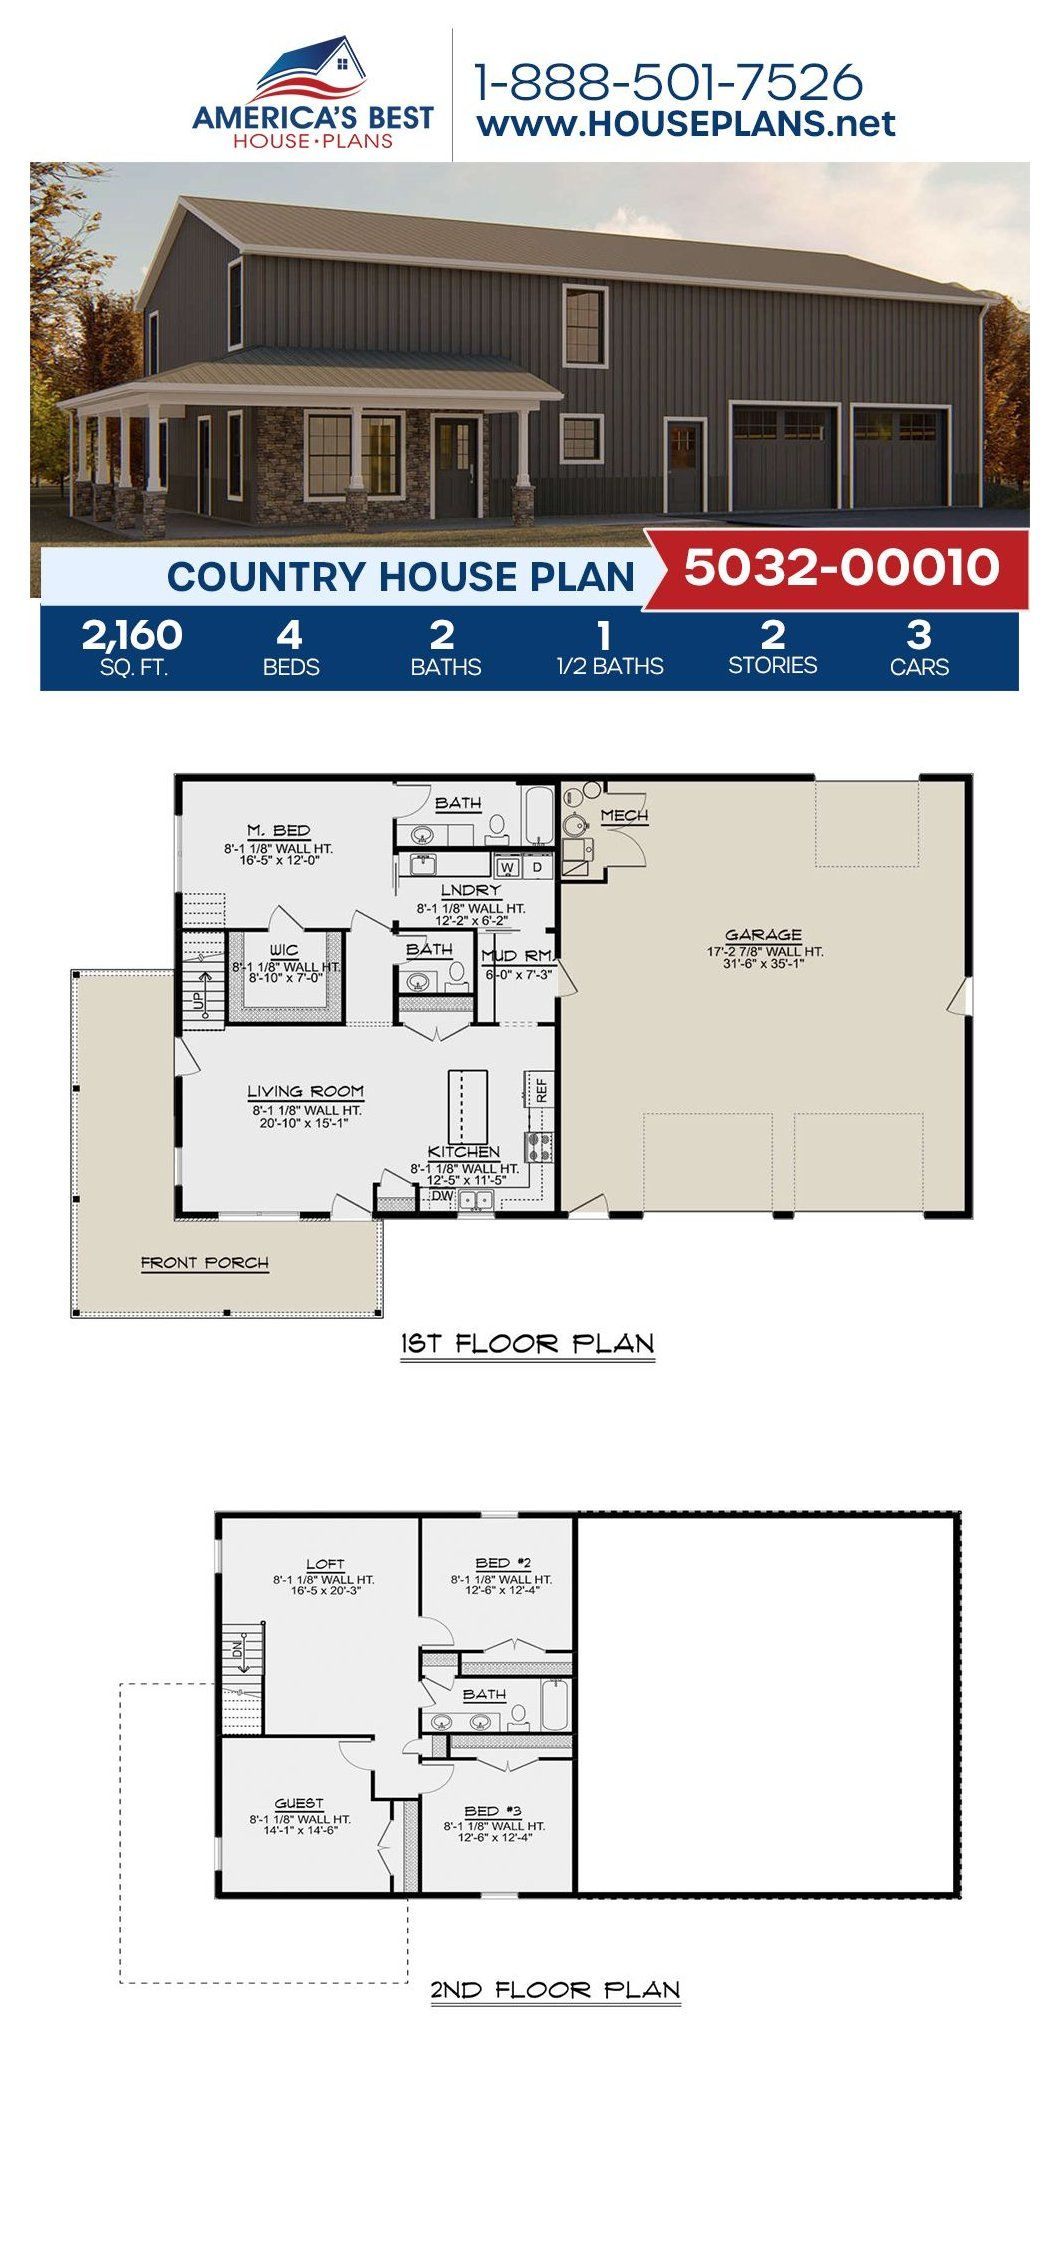 Country House Plan 5032 pole barn homes plans 2 story